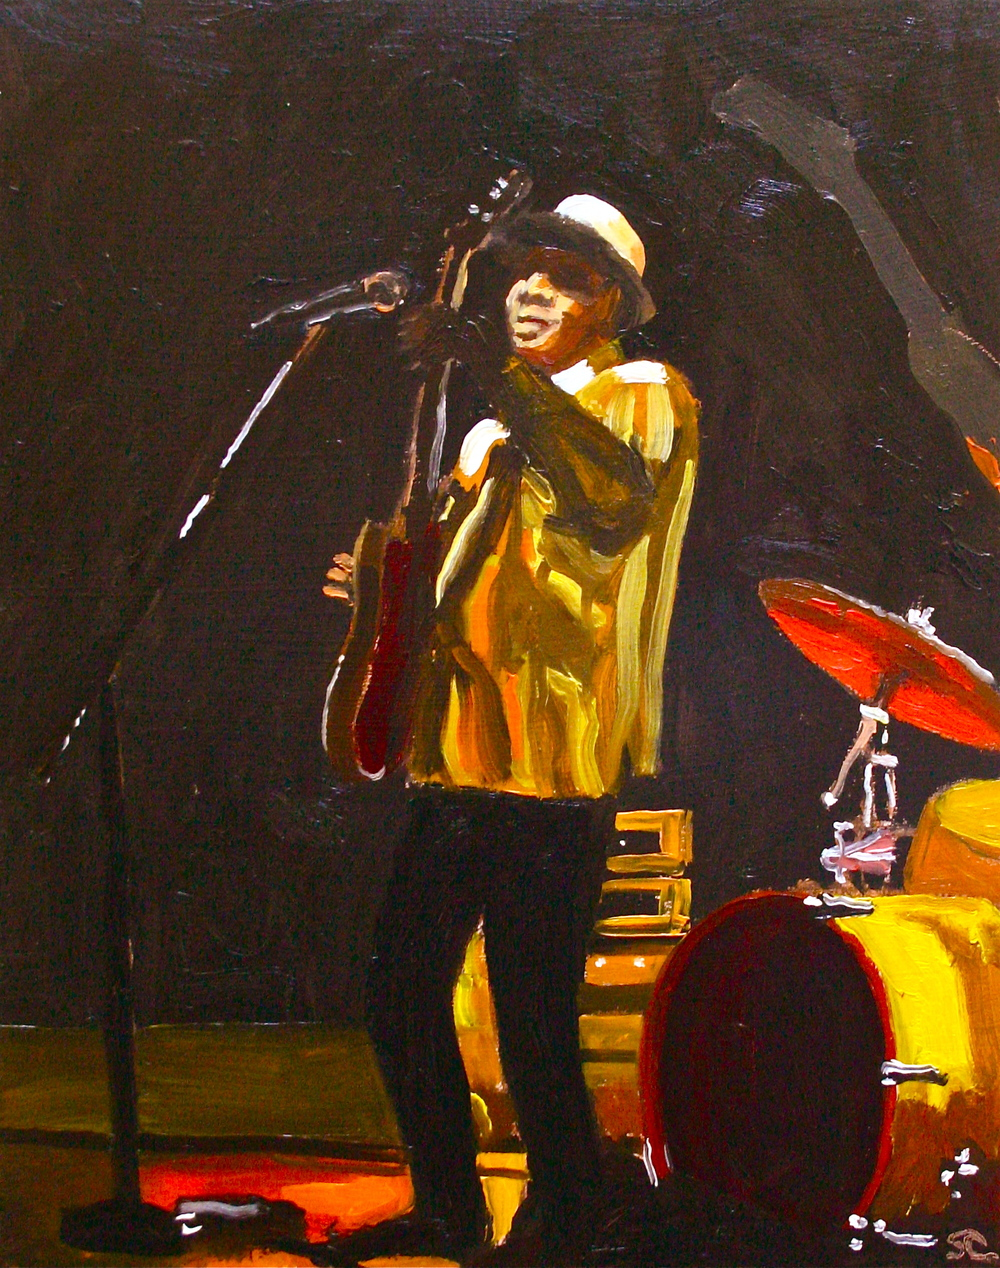 """Hey Mister Bluesman"" oil on panel 8 x 10, sold"